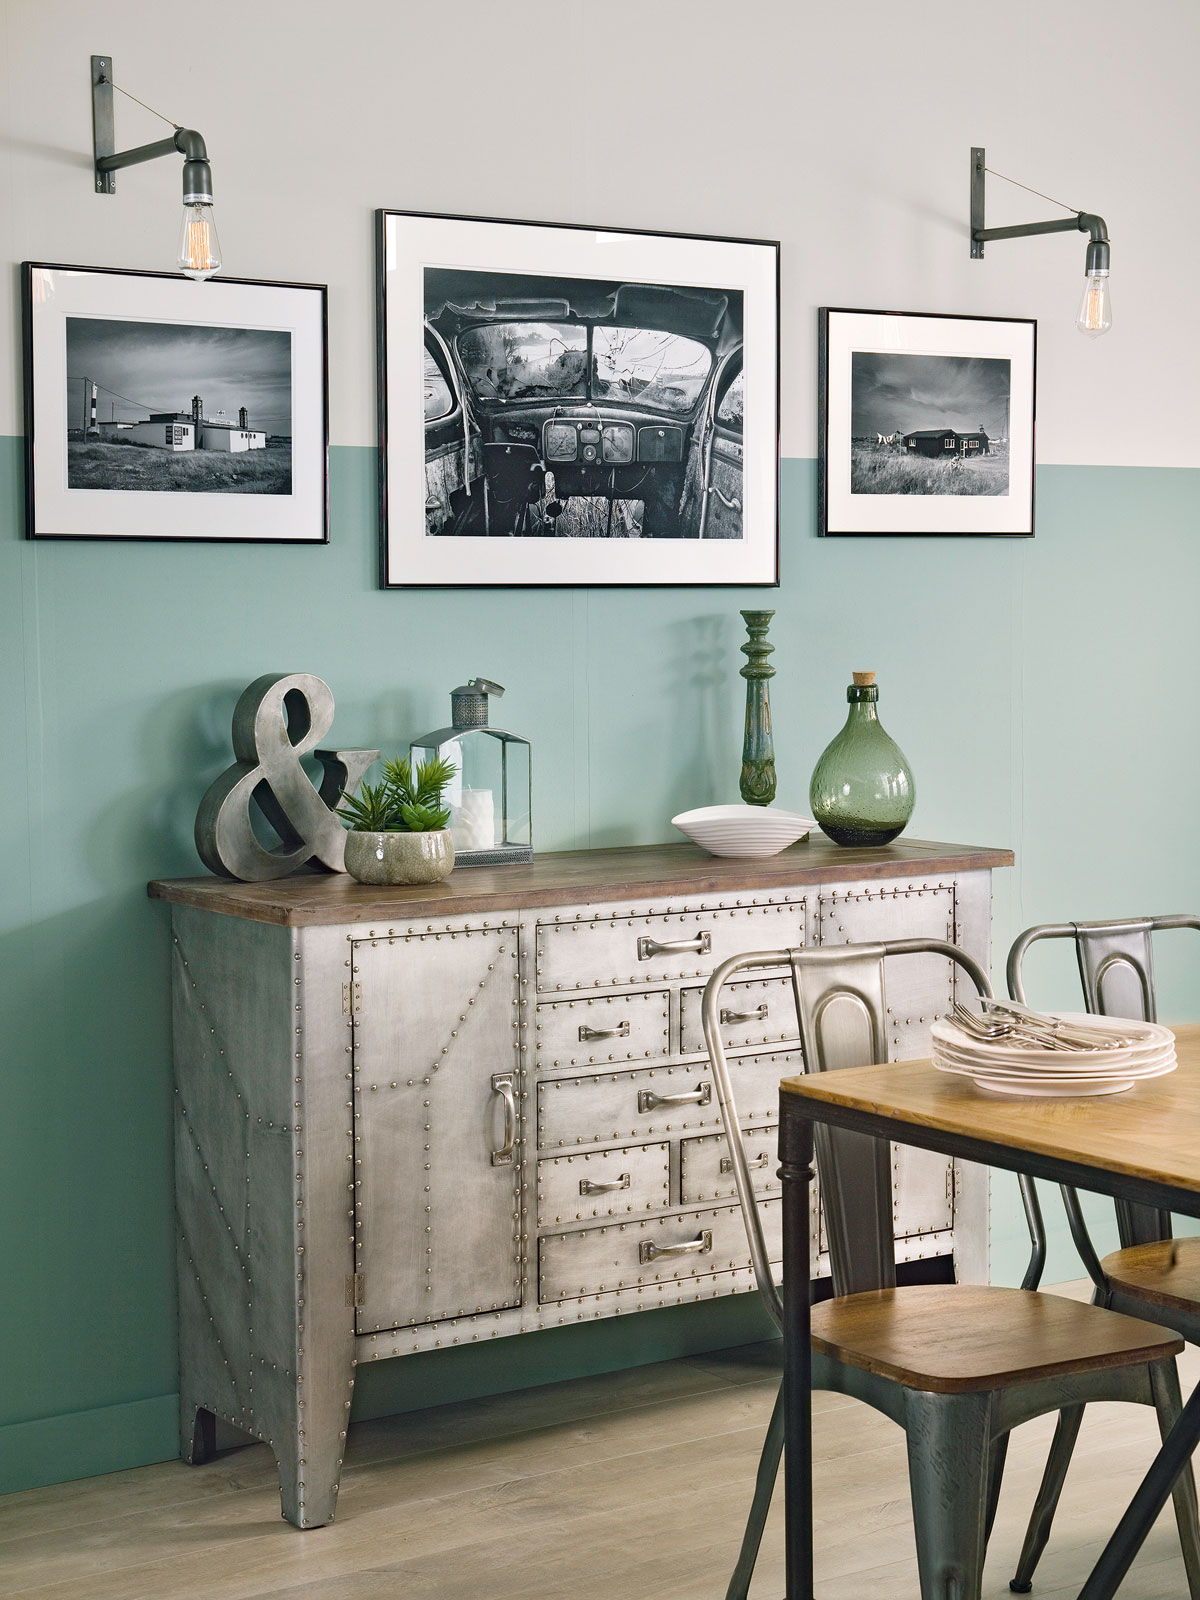 Industrial style by Sophie Robinson for Ideal Home. Photograph by Simon Whitmore